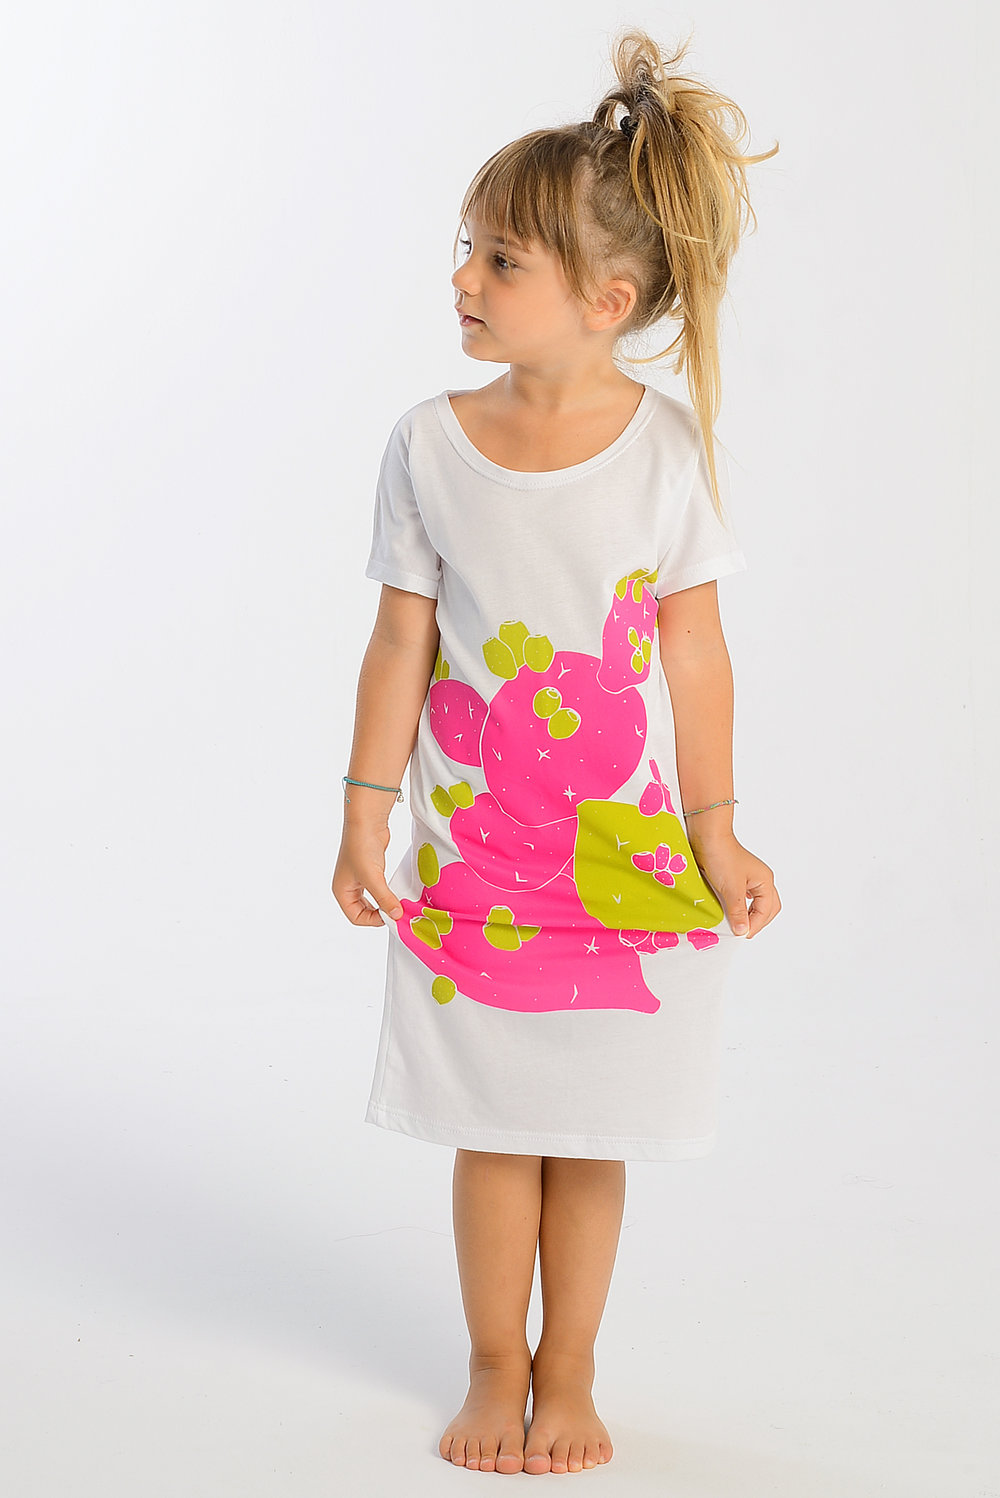 fragosyko-fuchsia-on-white-cotton-kids-tshirt-dress.jpg